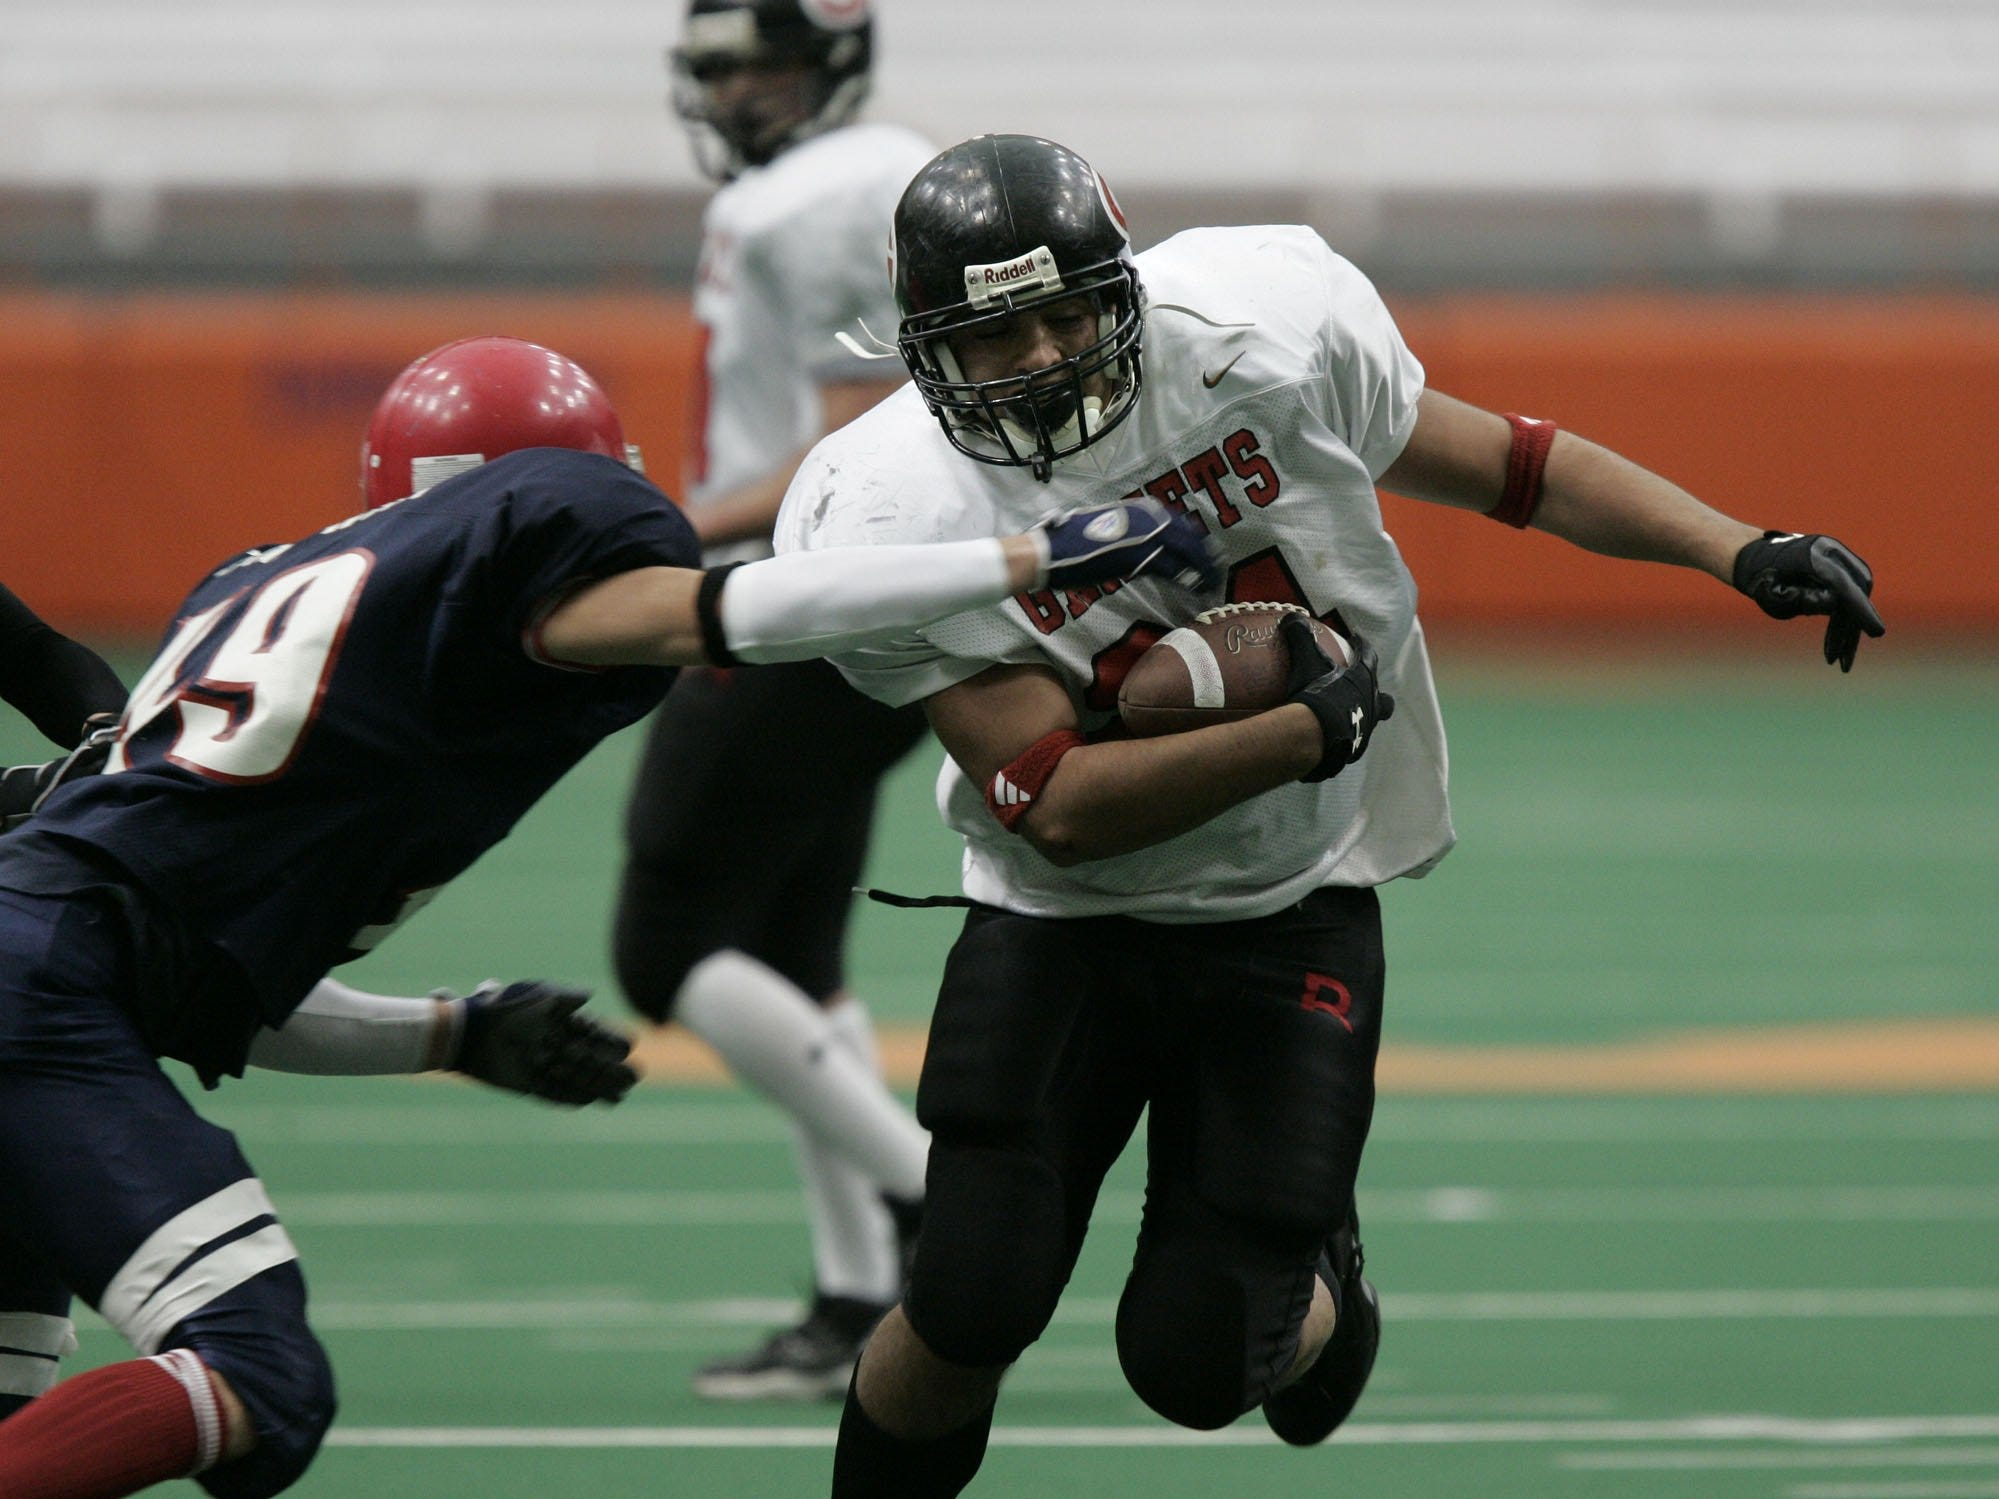 Rye's Robert Nieves (24) is tackled by Chenango Forks' Nick Tarnowski (49) during the Class B State Final at the Carrier Dome in Syracuse, N.Y. Nov. 26, 2004. Chenango Forks won, 48-0.